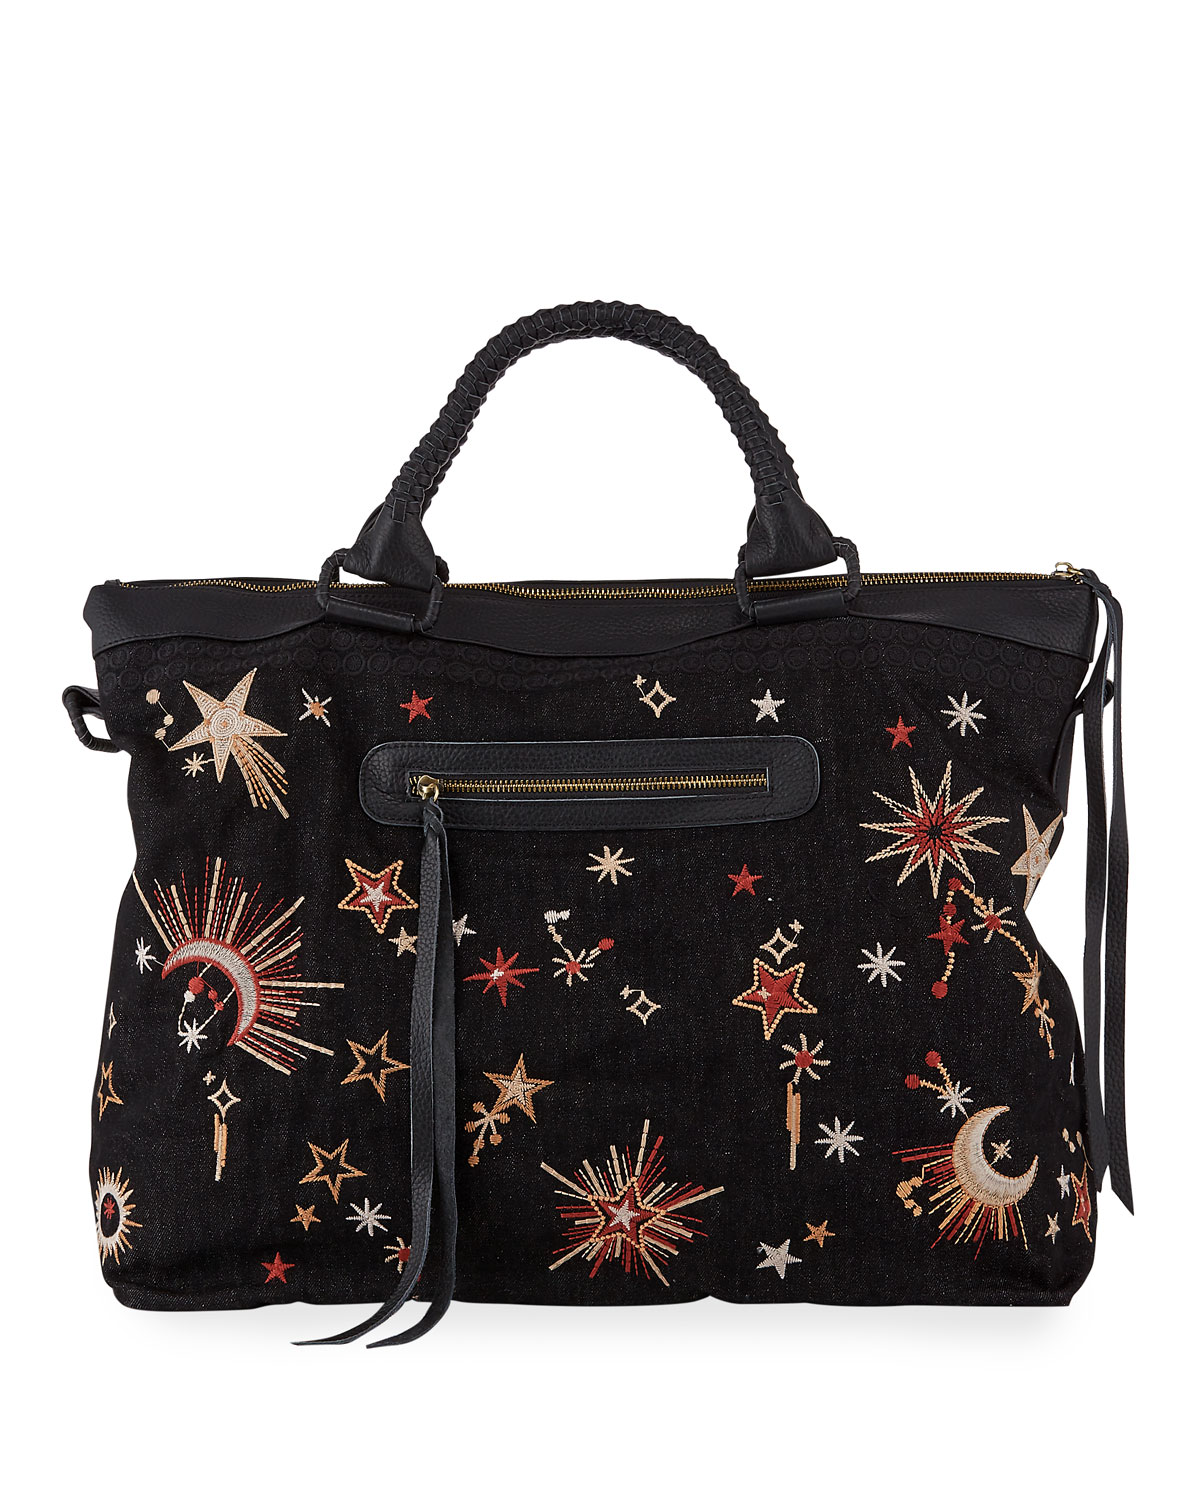 Telesto Celestial Embroidered Overnight Tote Bag by Johnny Was